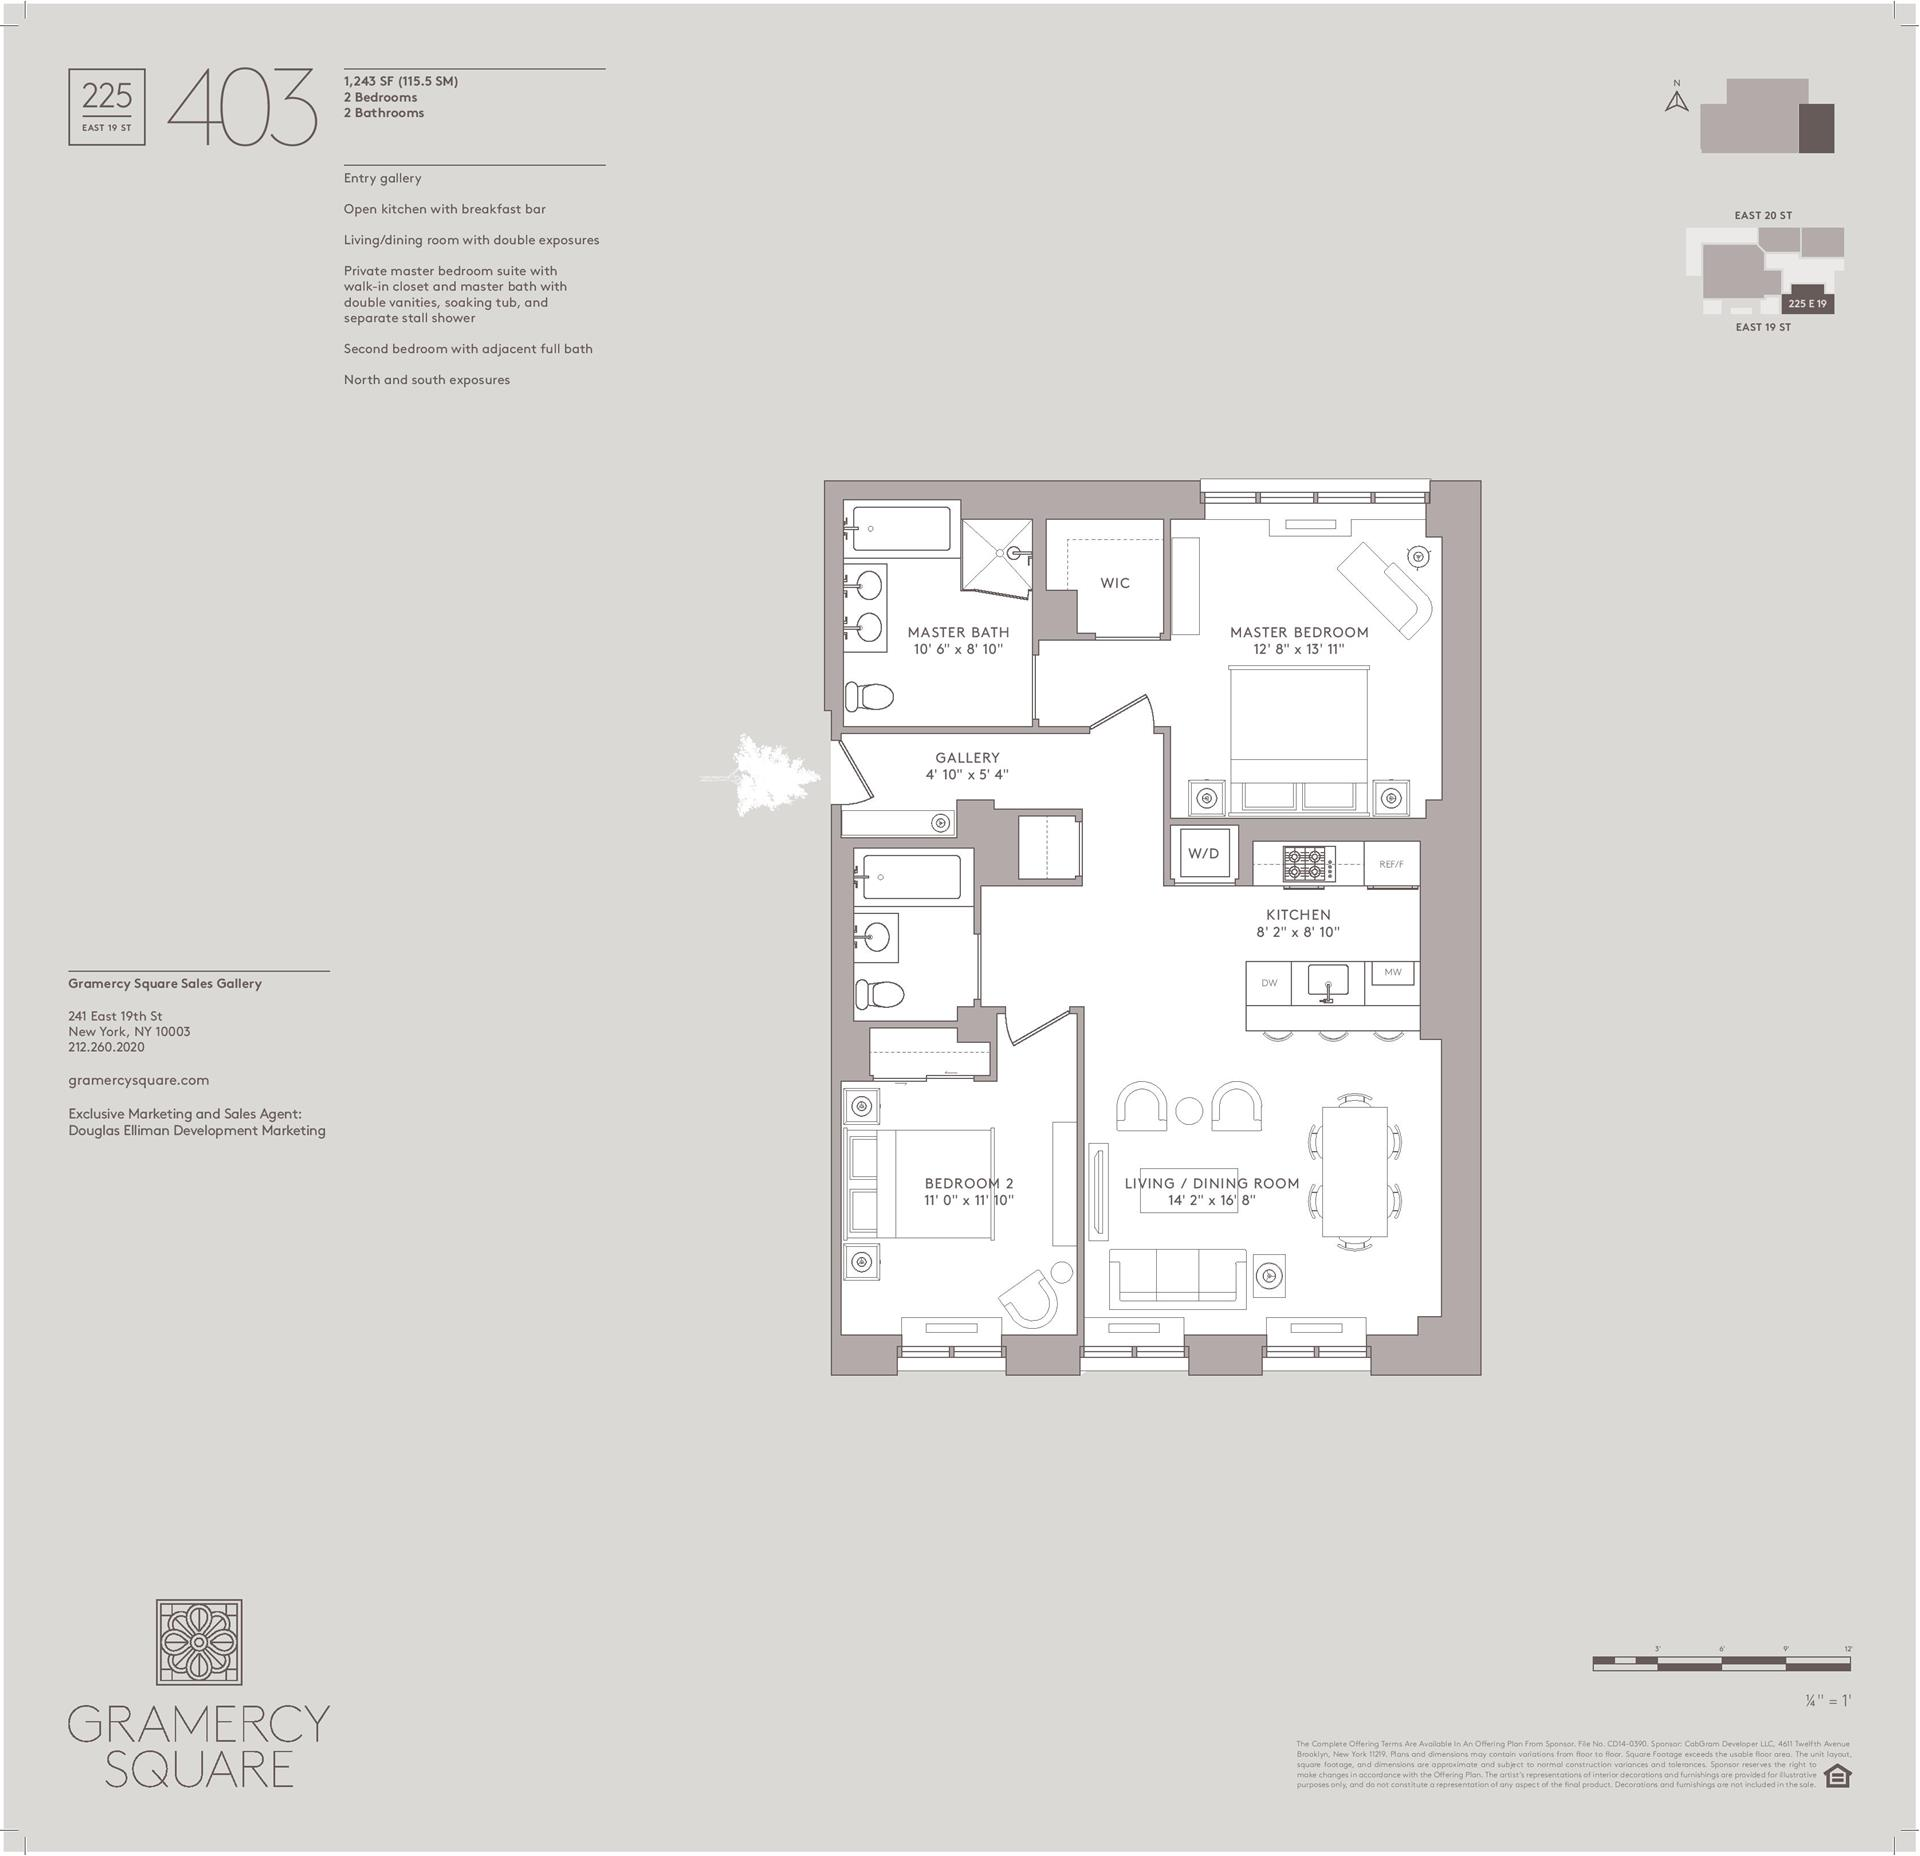 Floor plan of Gramercy Square, 225 East 19th St, 403 - Gramercy - Union Square, New York